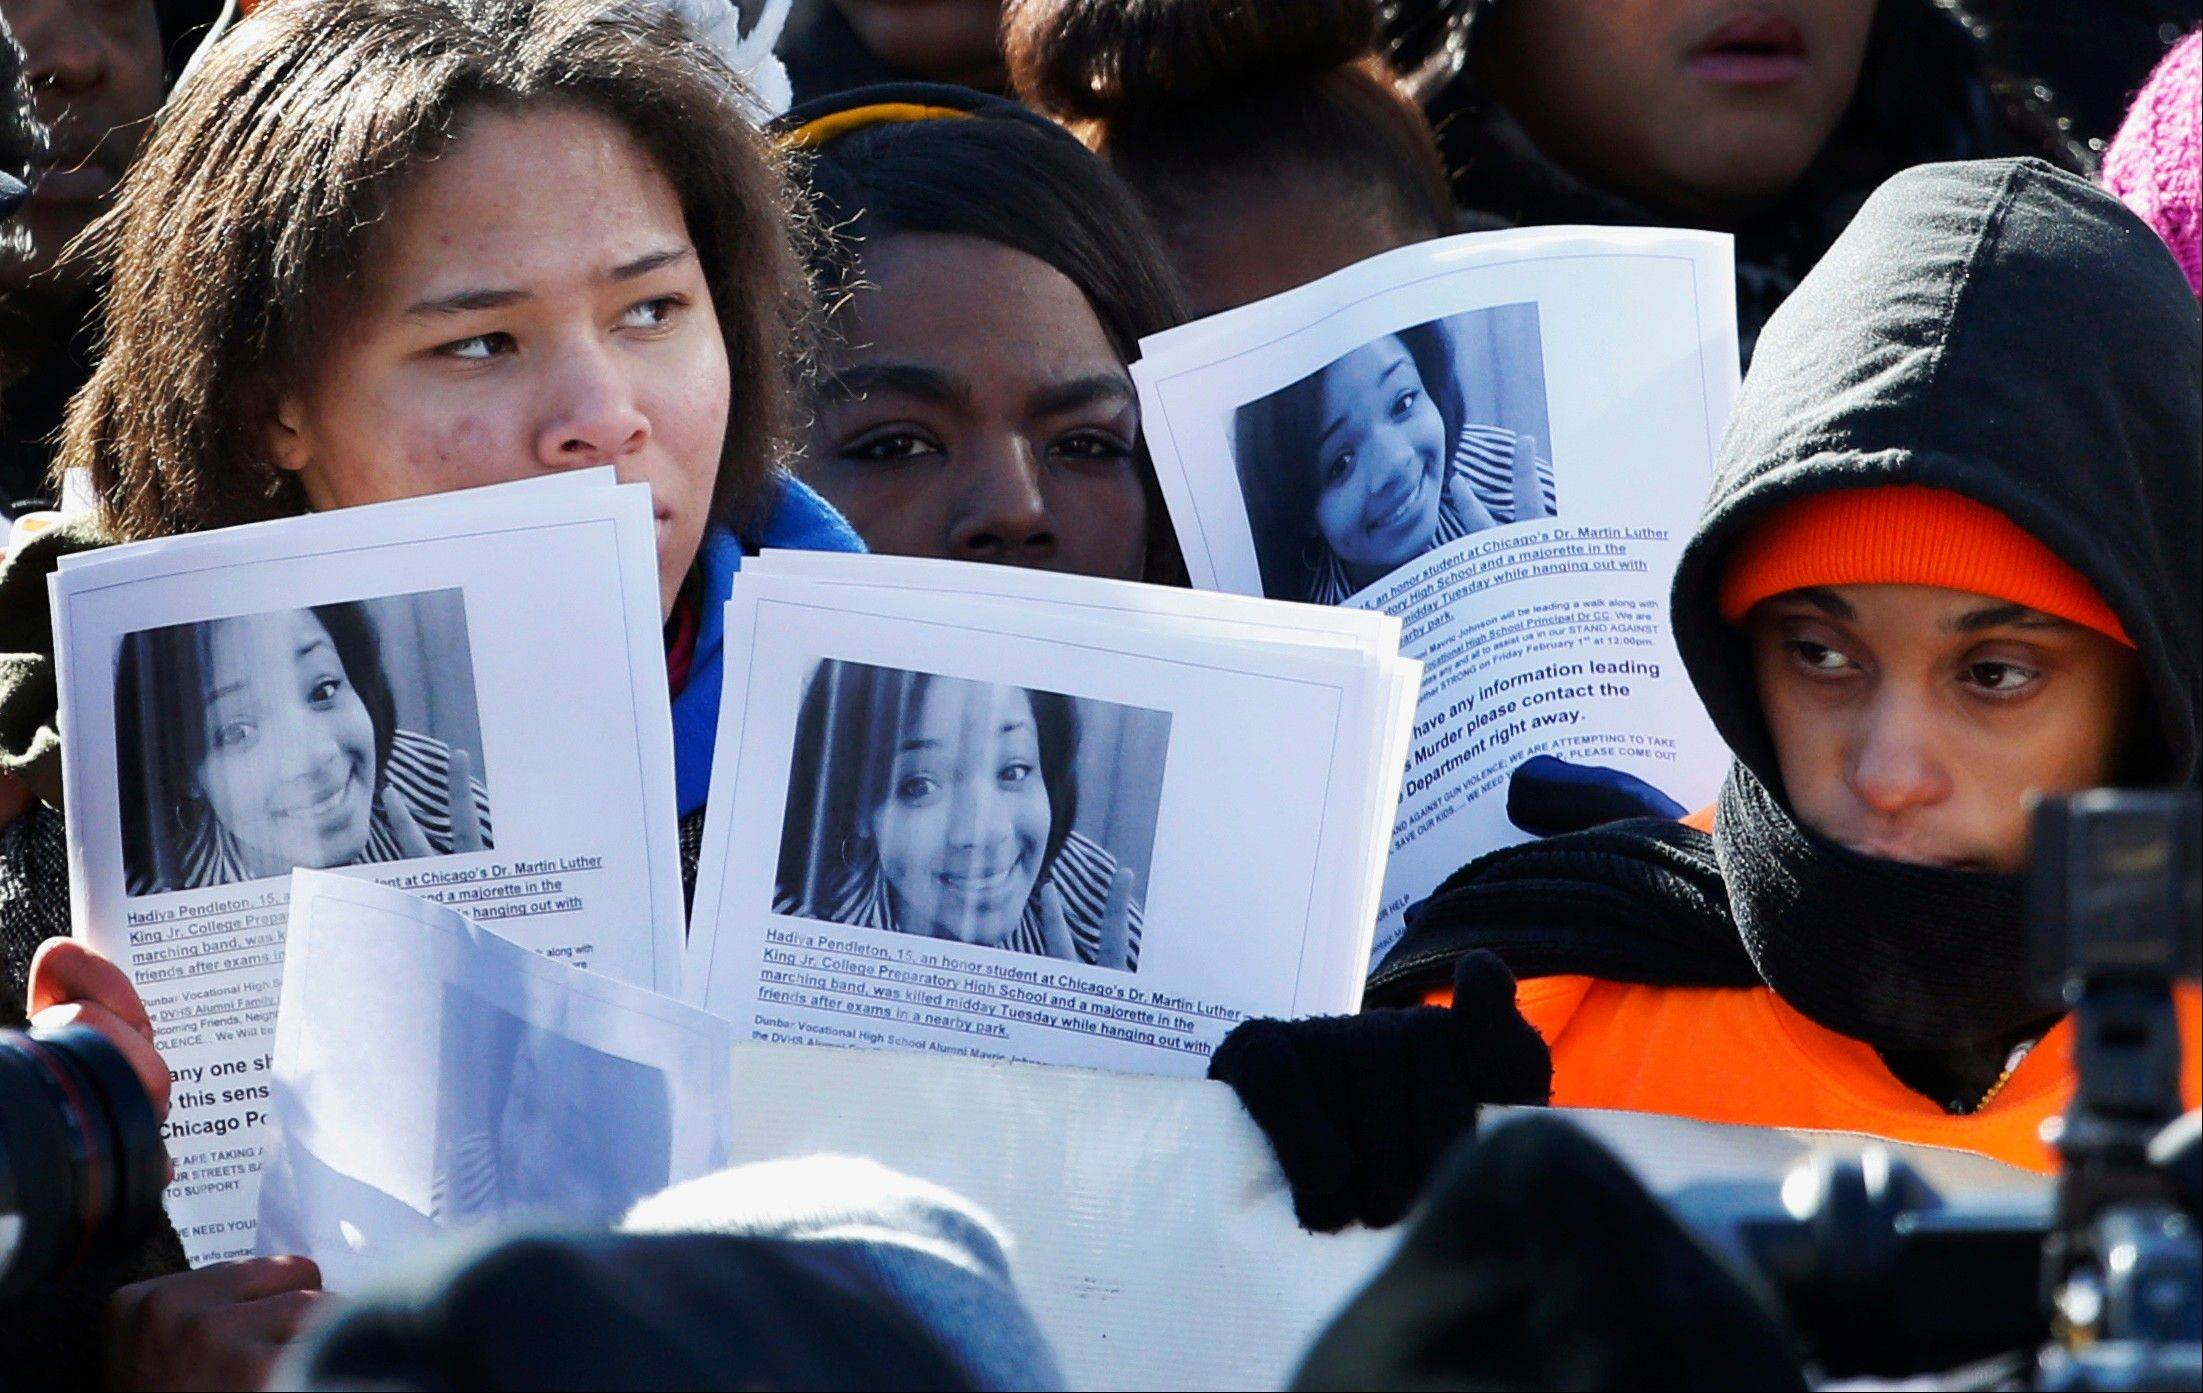 Protesters at an anti-gun violence rally Feb. 1 in Chicago hold up copied photos of 15-year-old Hadiya Pendleton, who was shot and killed Jan. 29 about a mile from President Barack Obama's home.